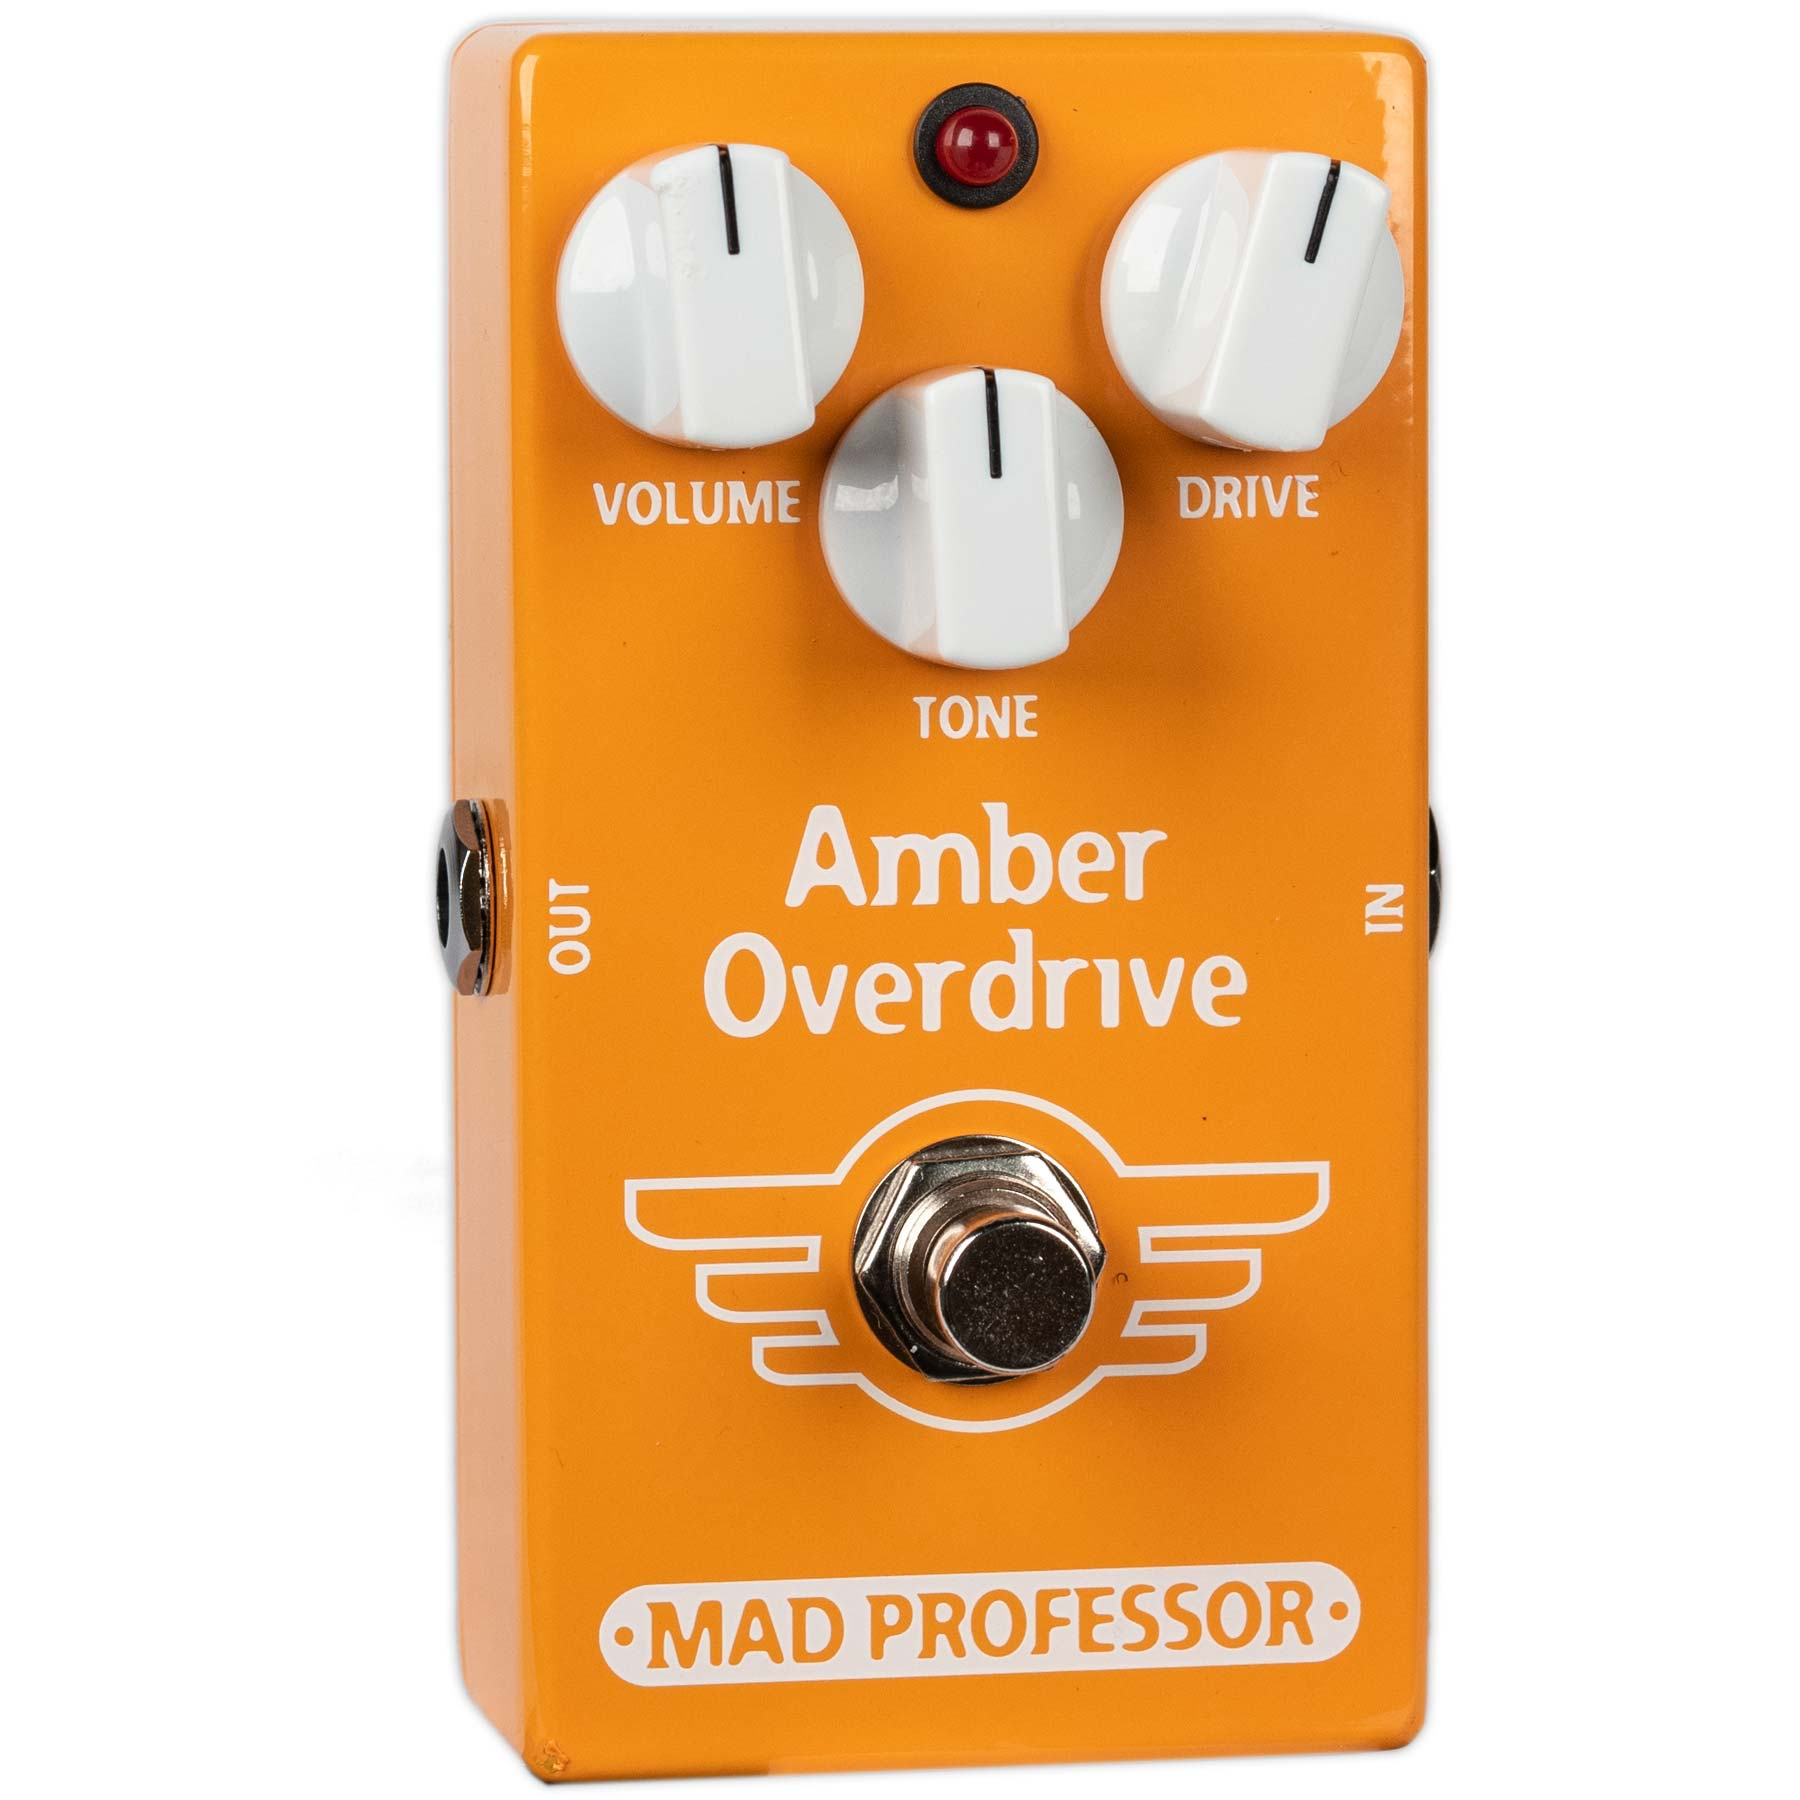 USED MAD PROFESSOR AMBER OVERDRIVE WITH BOX